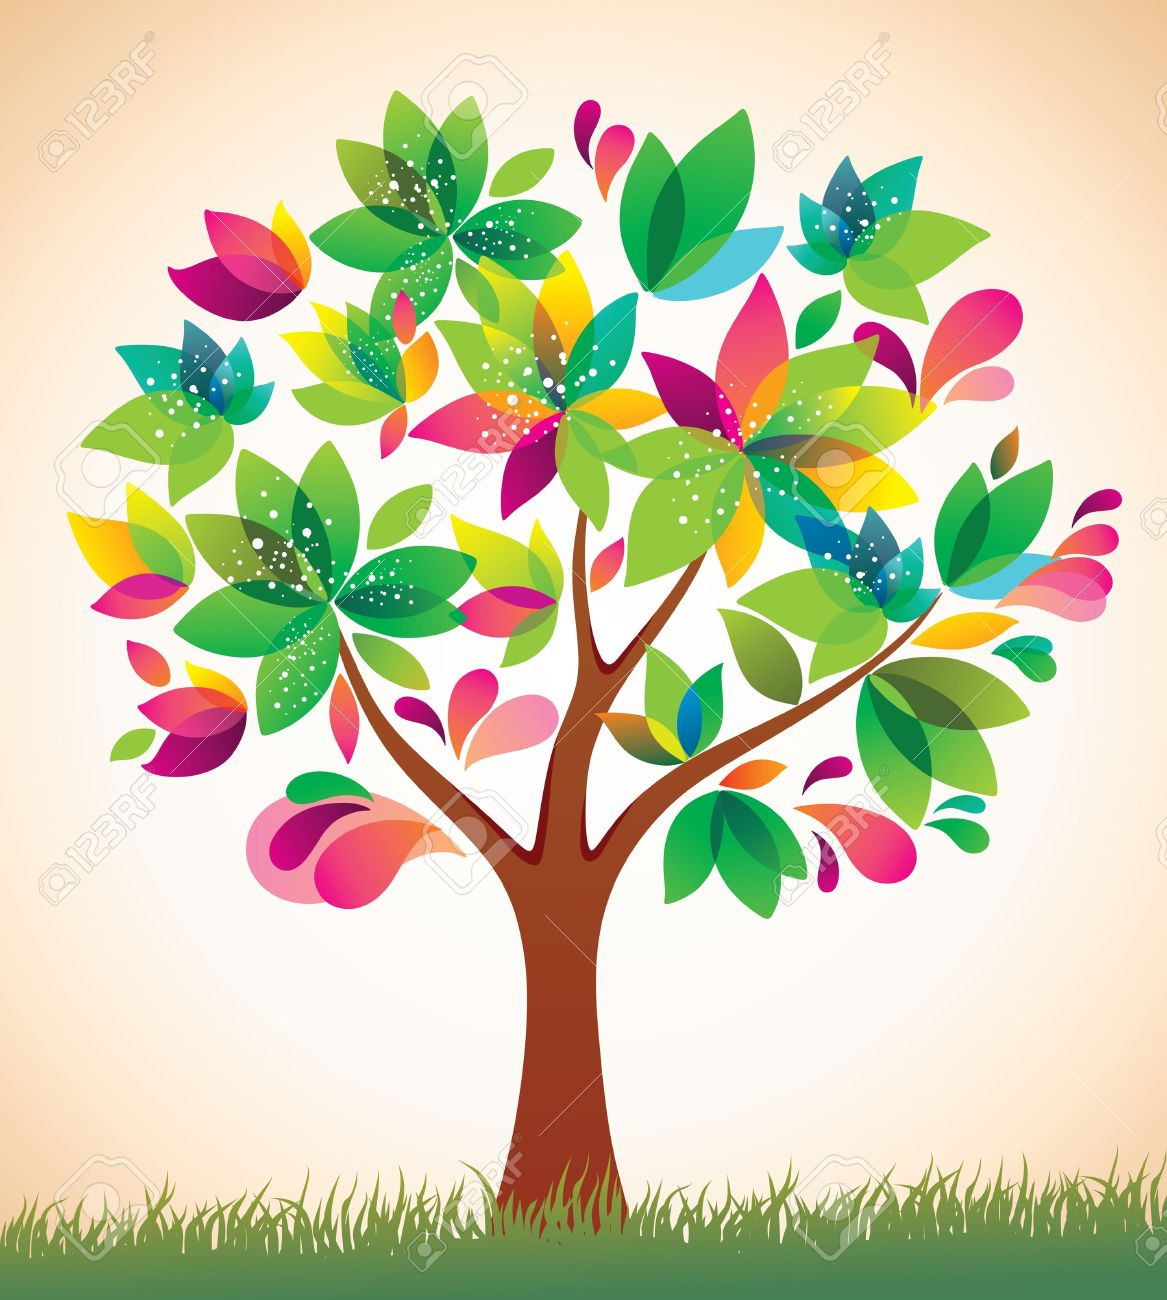 Colorful tree clipart.